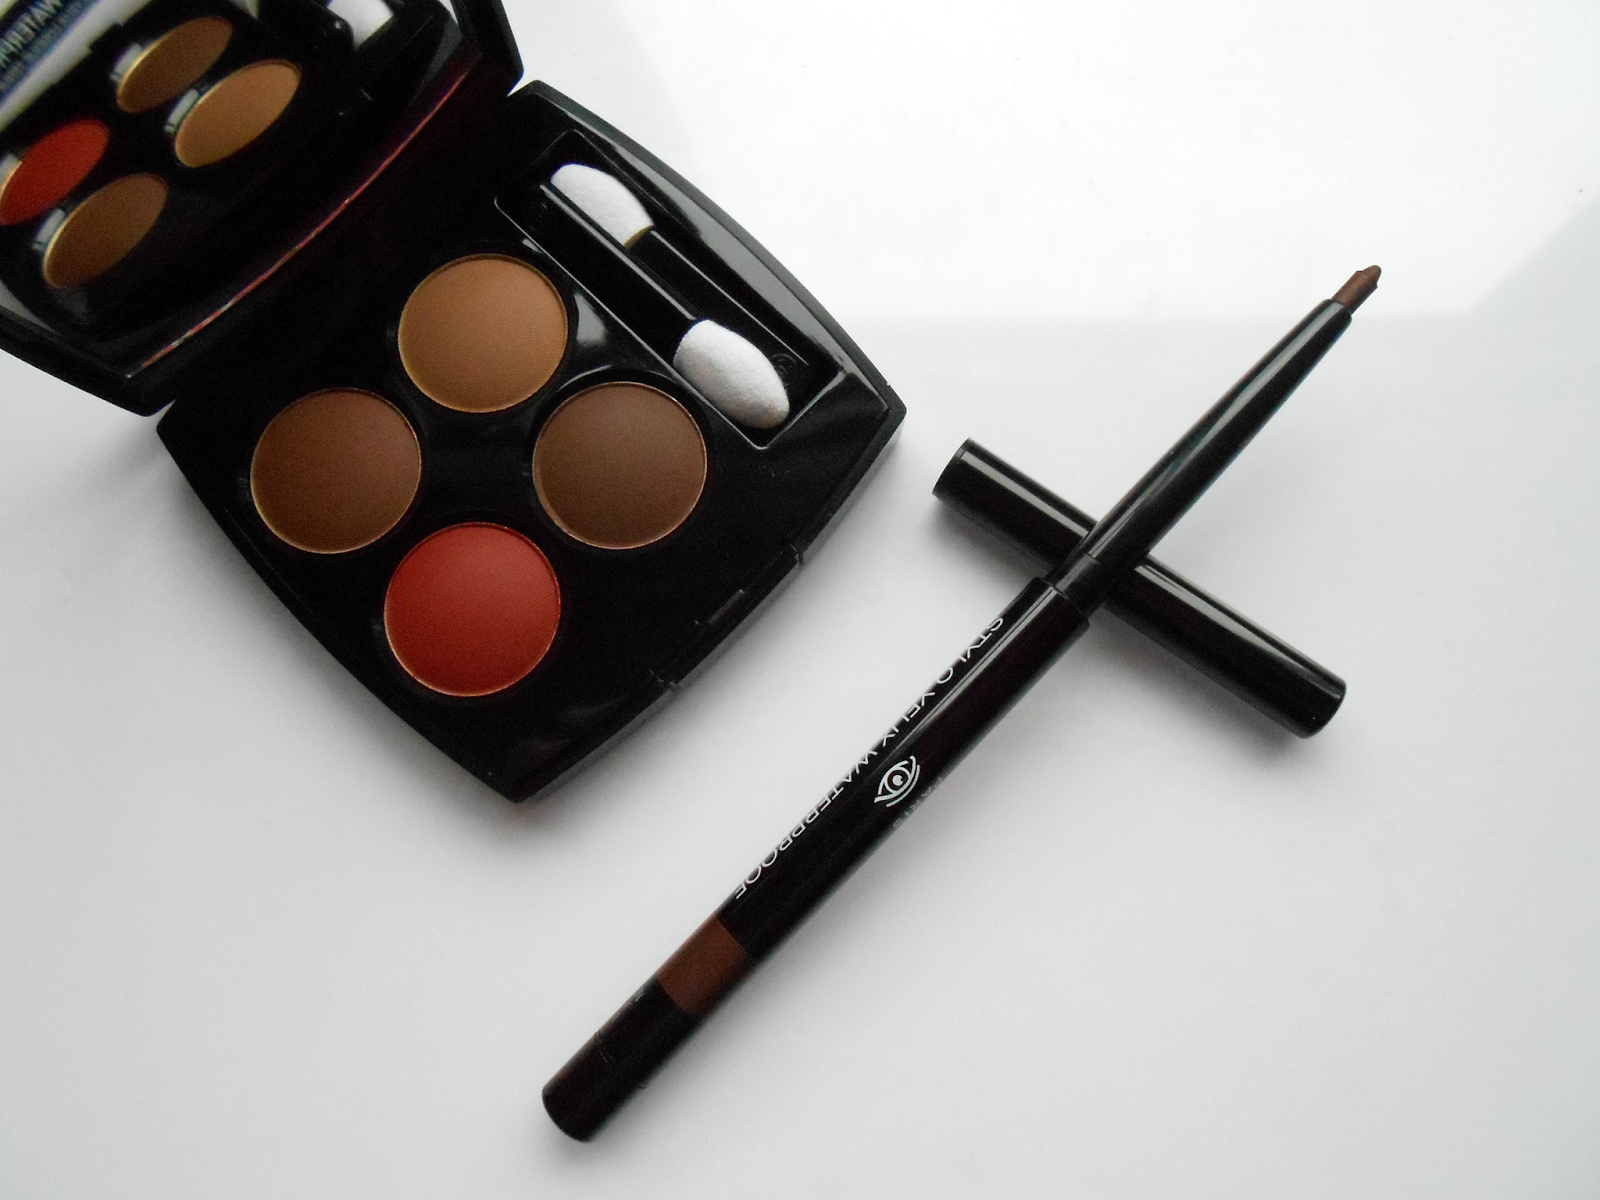 Chanel Les 4 Ombres Multi Effect Eye Shadow Quad in #268 Candeur et Expérience